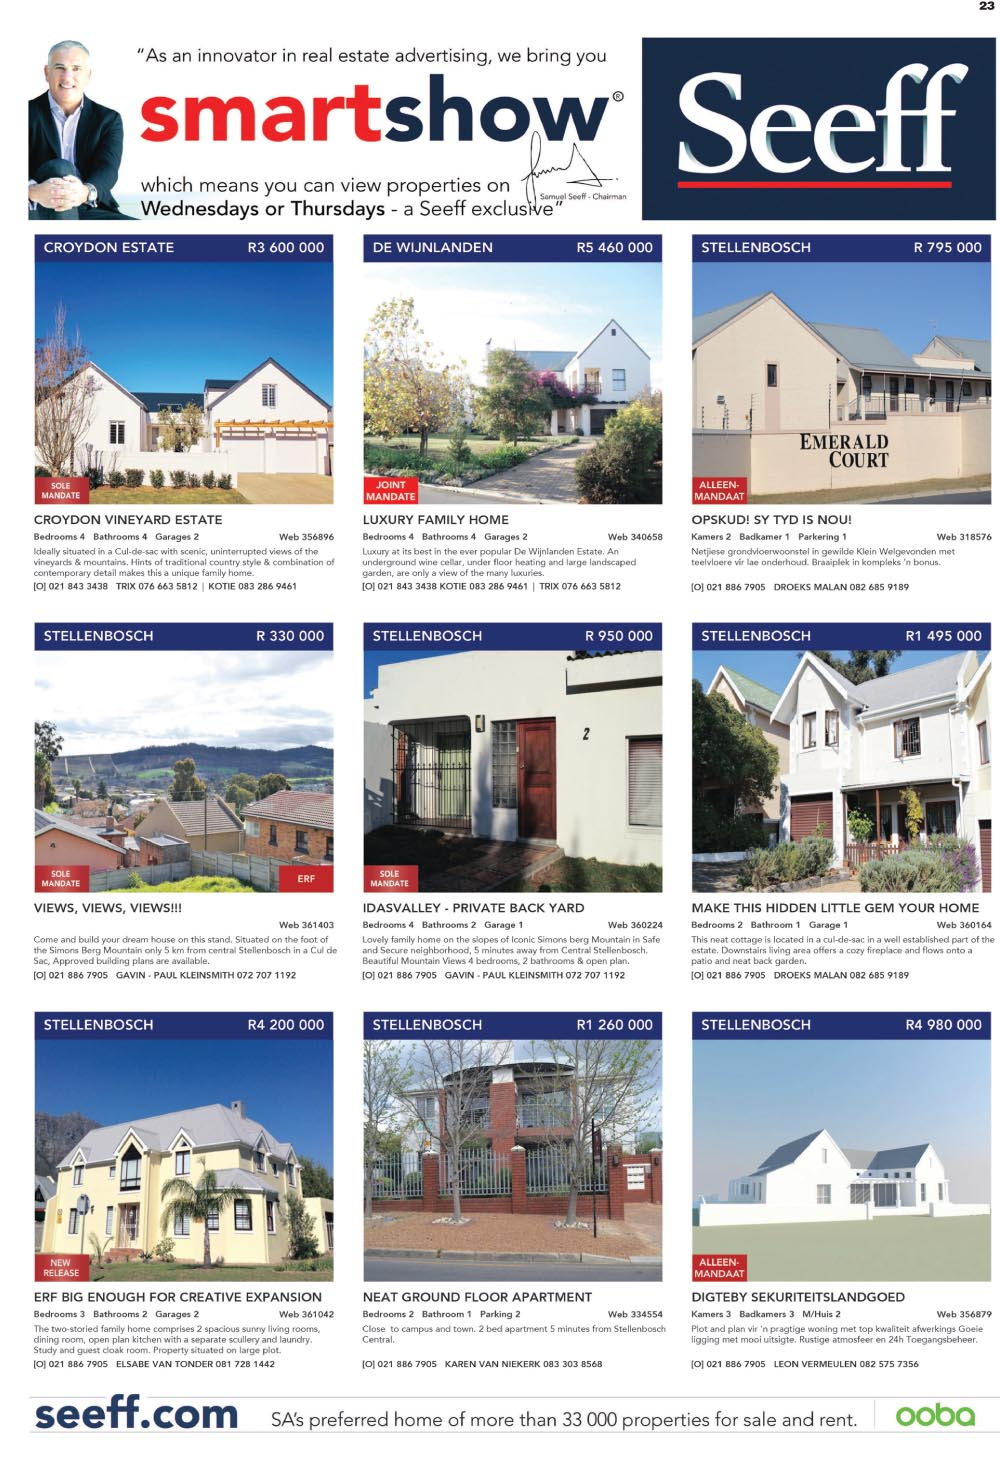 You are browsing images from the article: Property Selection-August 26 2015